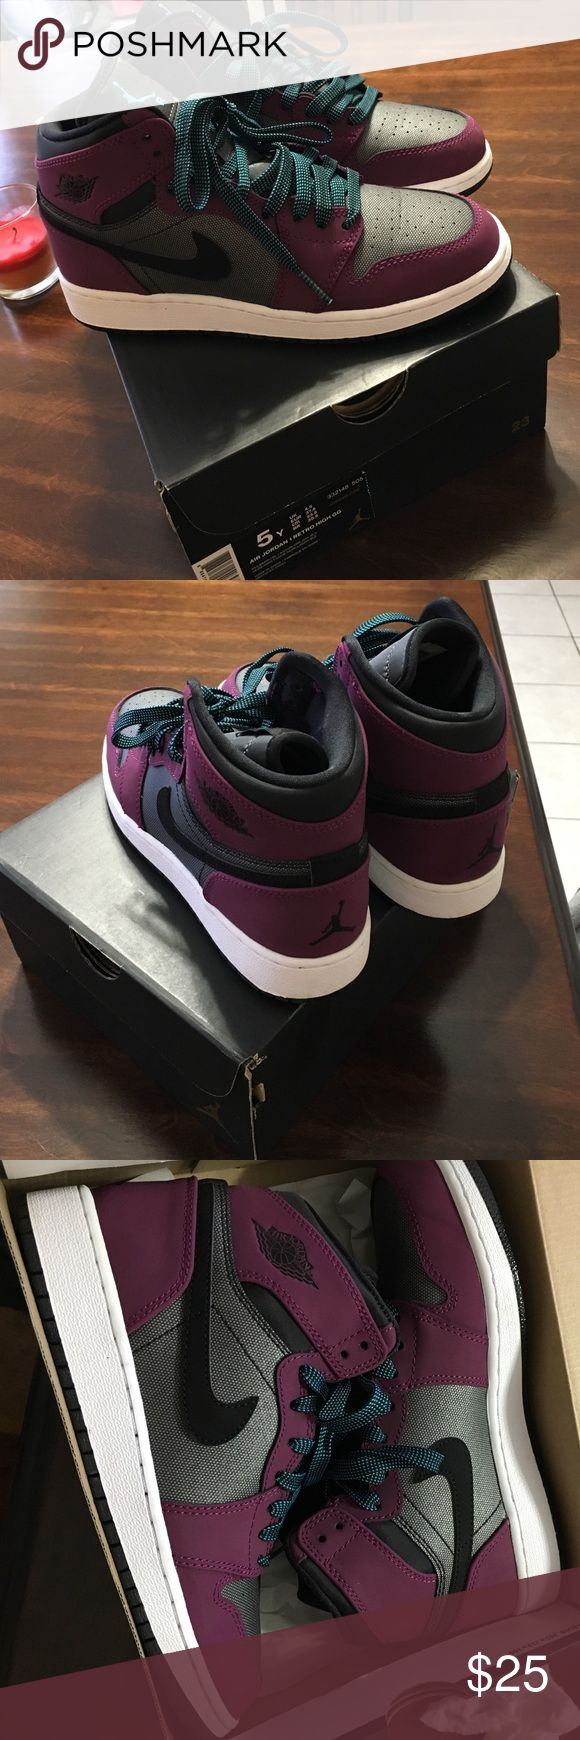 Air Jordan 1 retro high GG (size 5) They are a mulberry color dark grey and black with baby blue and black shoe laces Jordan Shoes Sneakers